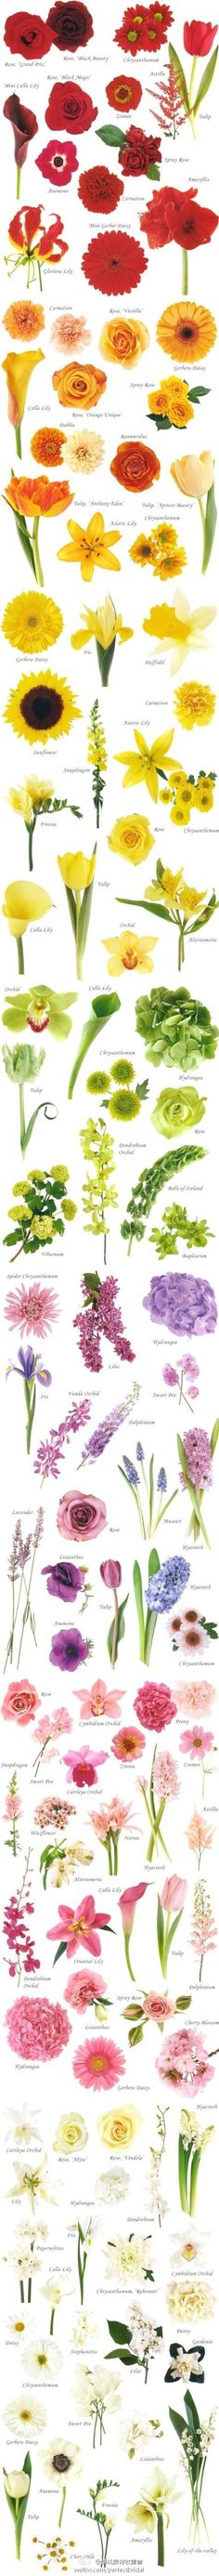 Flower Chart. You'll be glad you pinned this when it comes time. pinned with Pinvolve - pinvolve.co